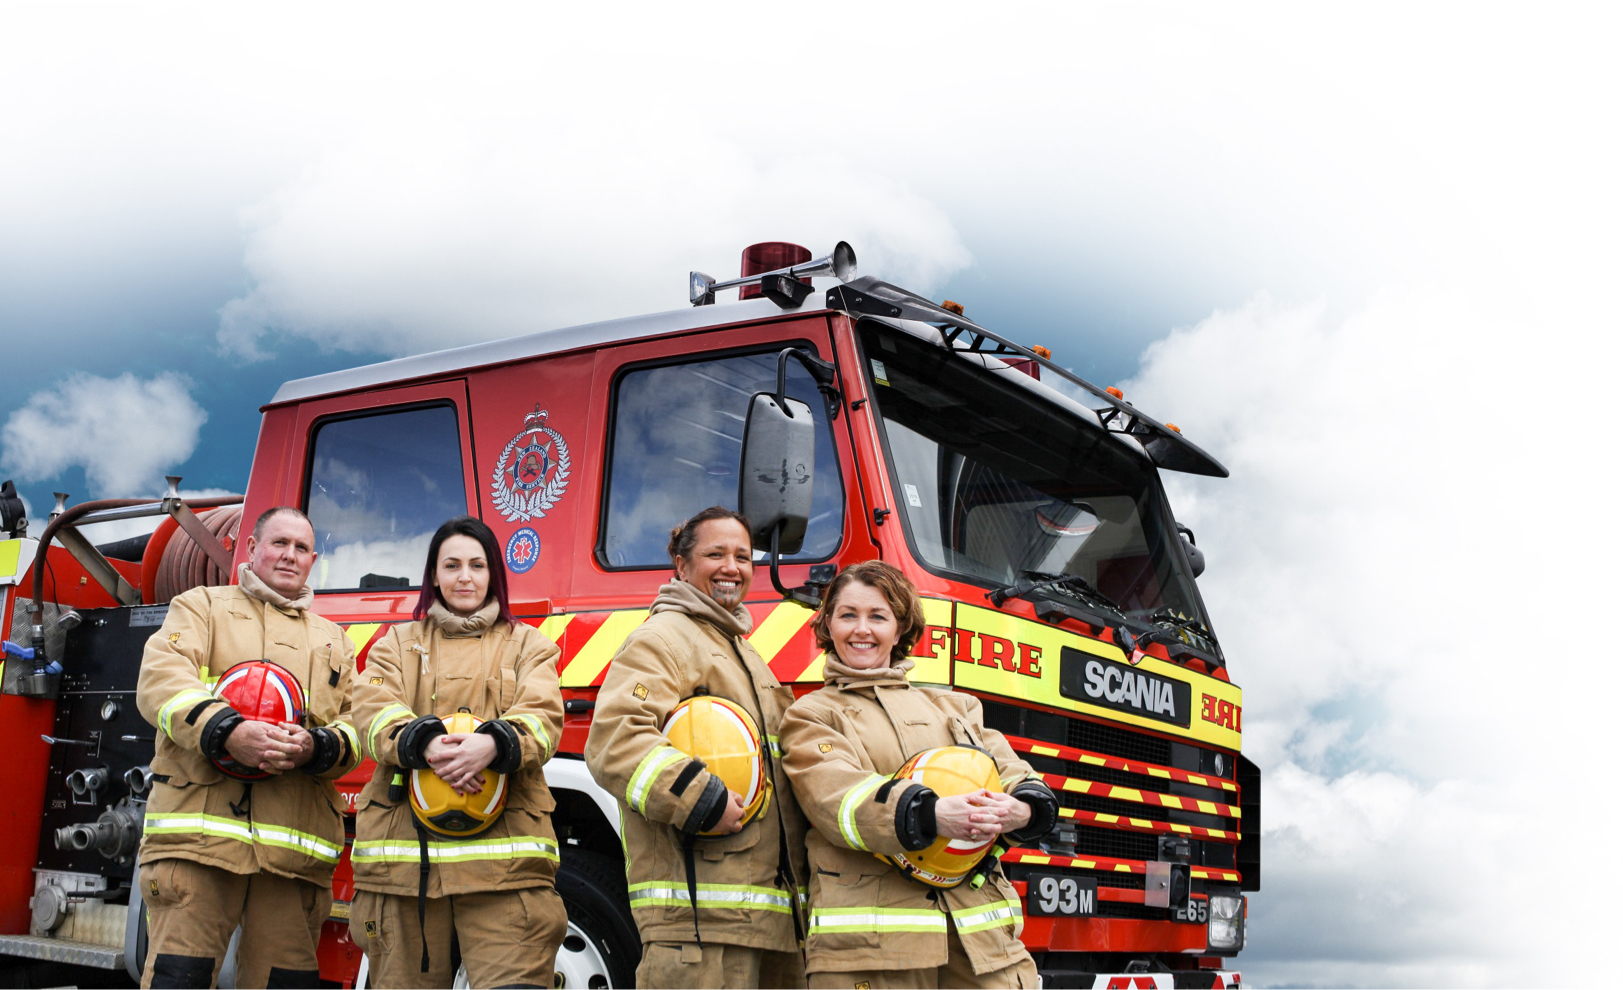 Group of firefighters in full kit standing in front of a fire engine